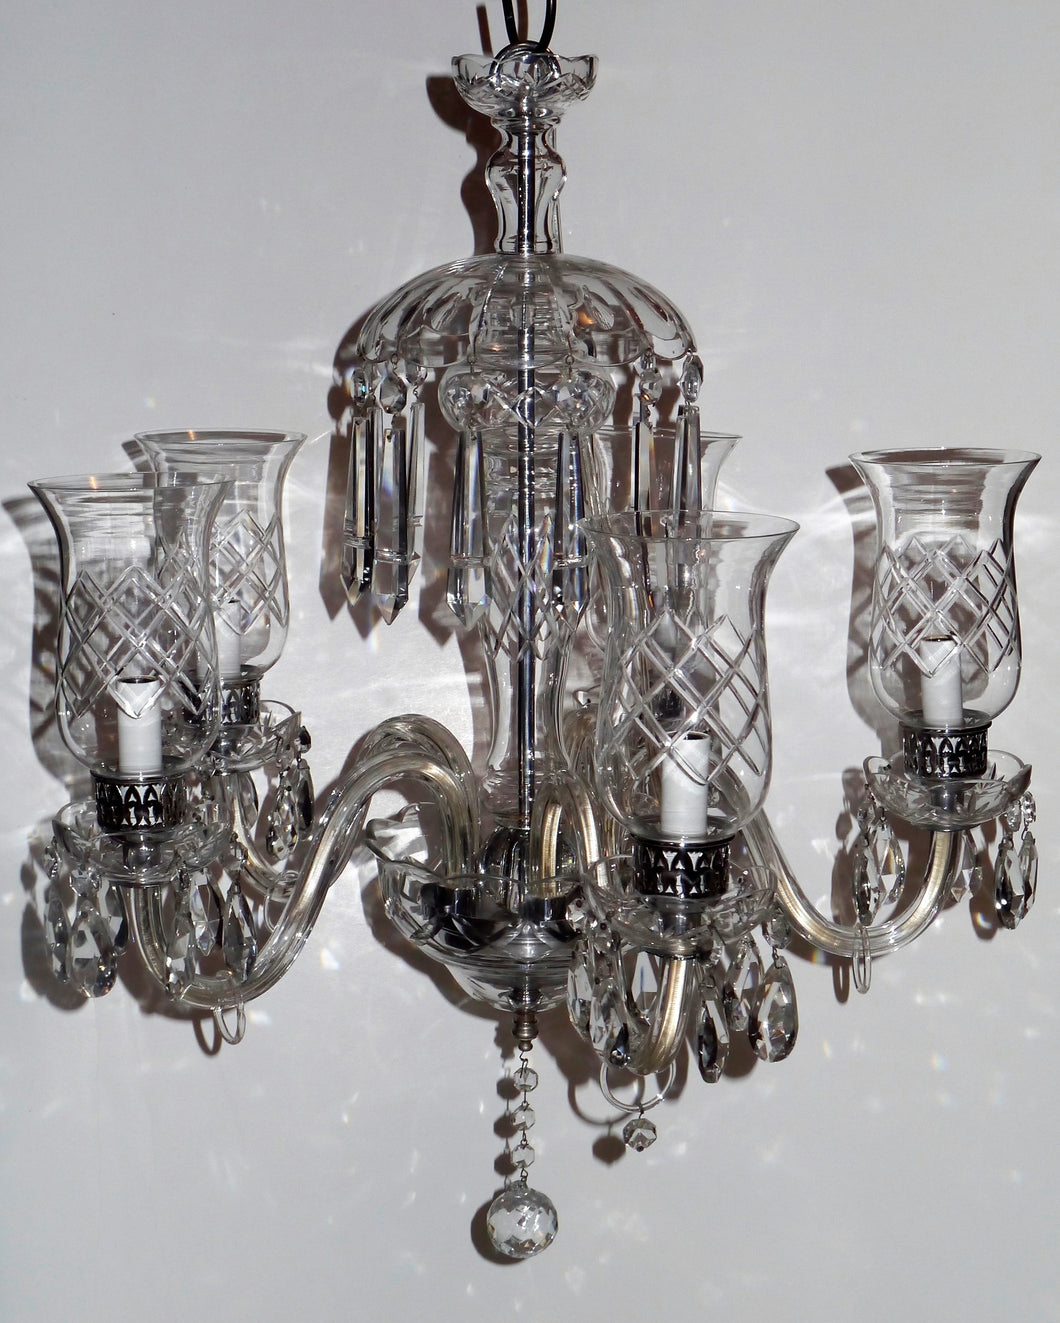 Antique French Traditional Style 5 Arm Crystal Chandelier with Crystal Cheminee'